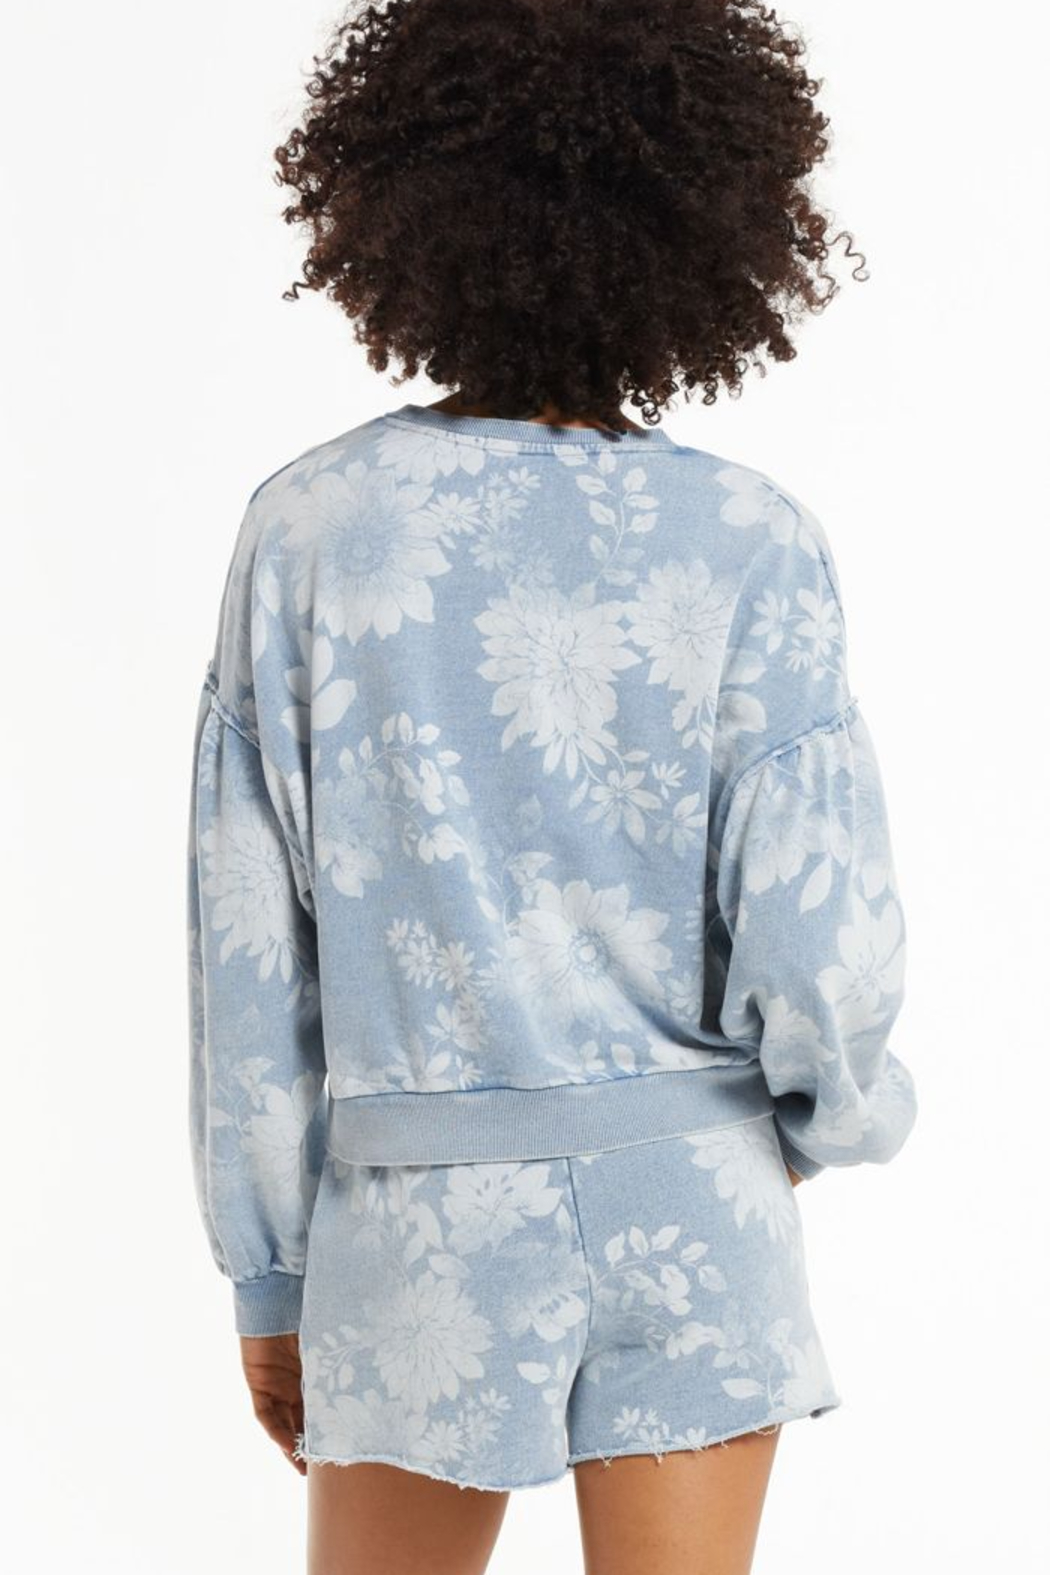 z supply Claire Floral Sweatshirt - Back Cropped Image